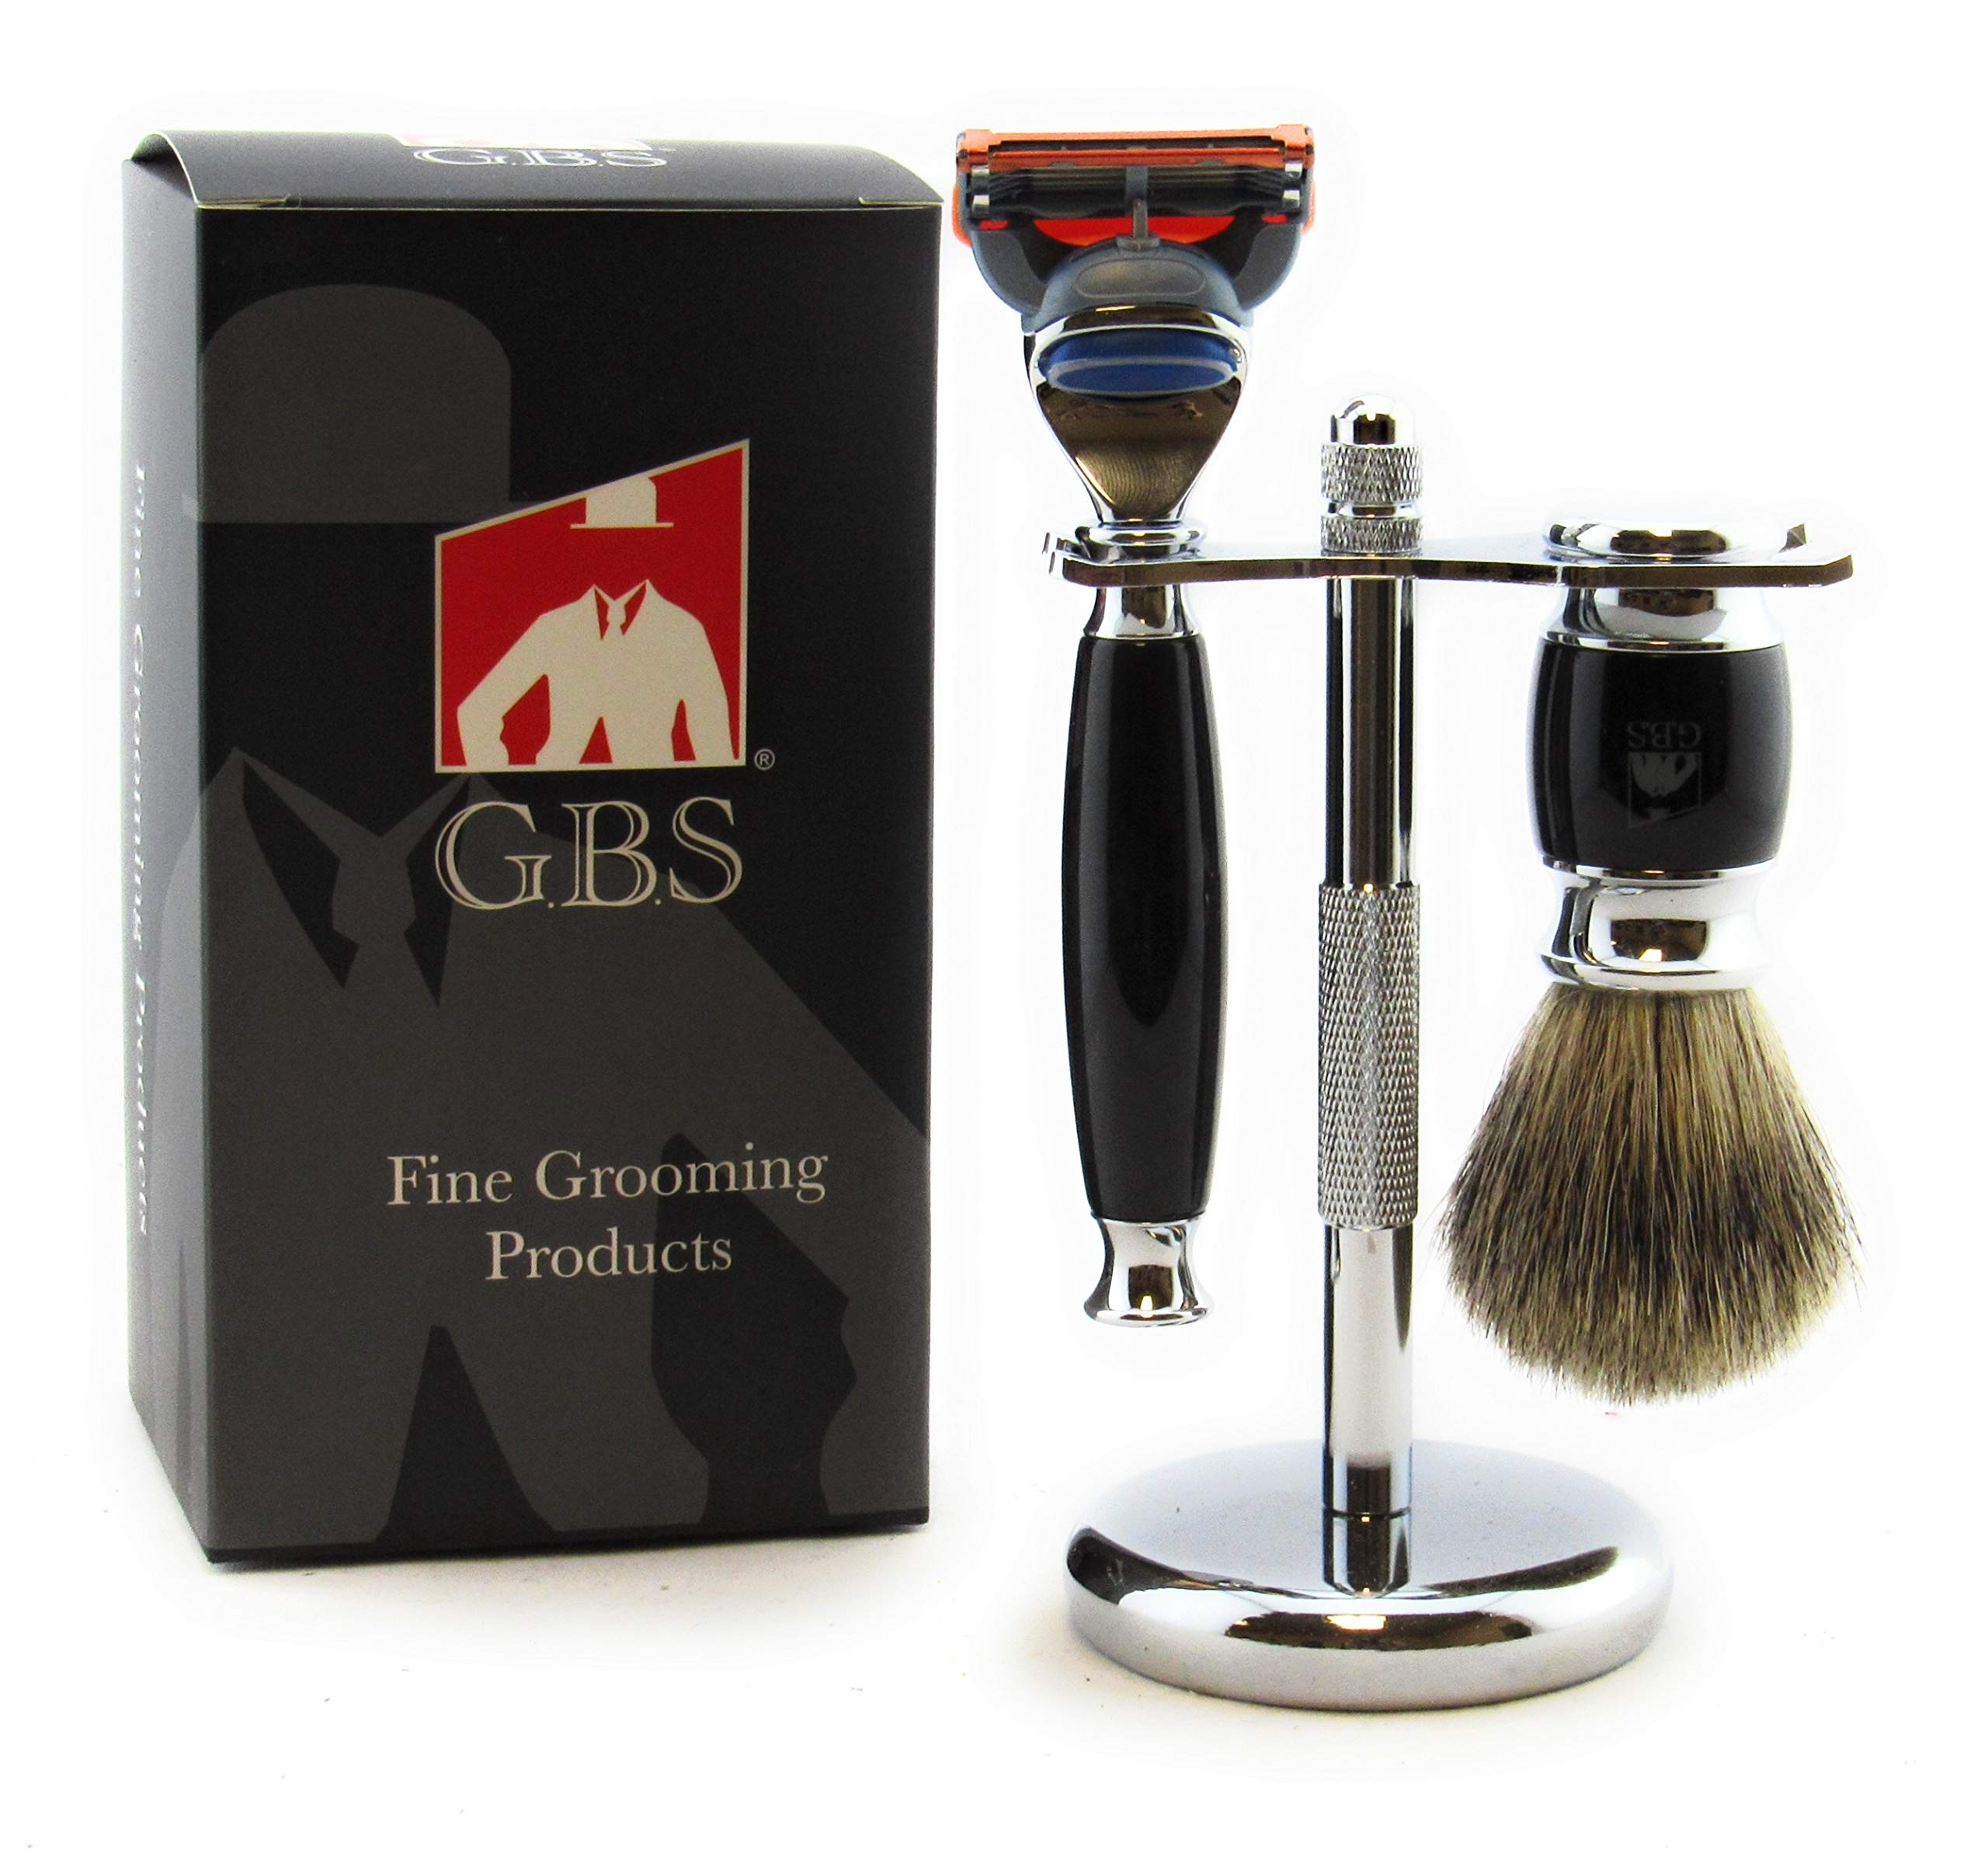 GBS Premium Shaving Gift Set - Black Handle 5 Blade Razor, Pure Badger Bristle Brush and Chrome Stand - Ultimate Wet Shaving and Perfect to Groom Beard Includes 1 blade